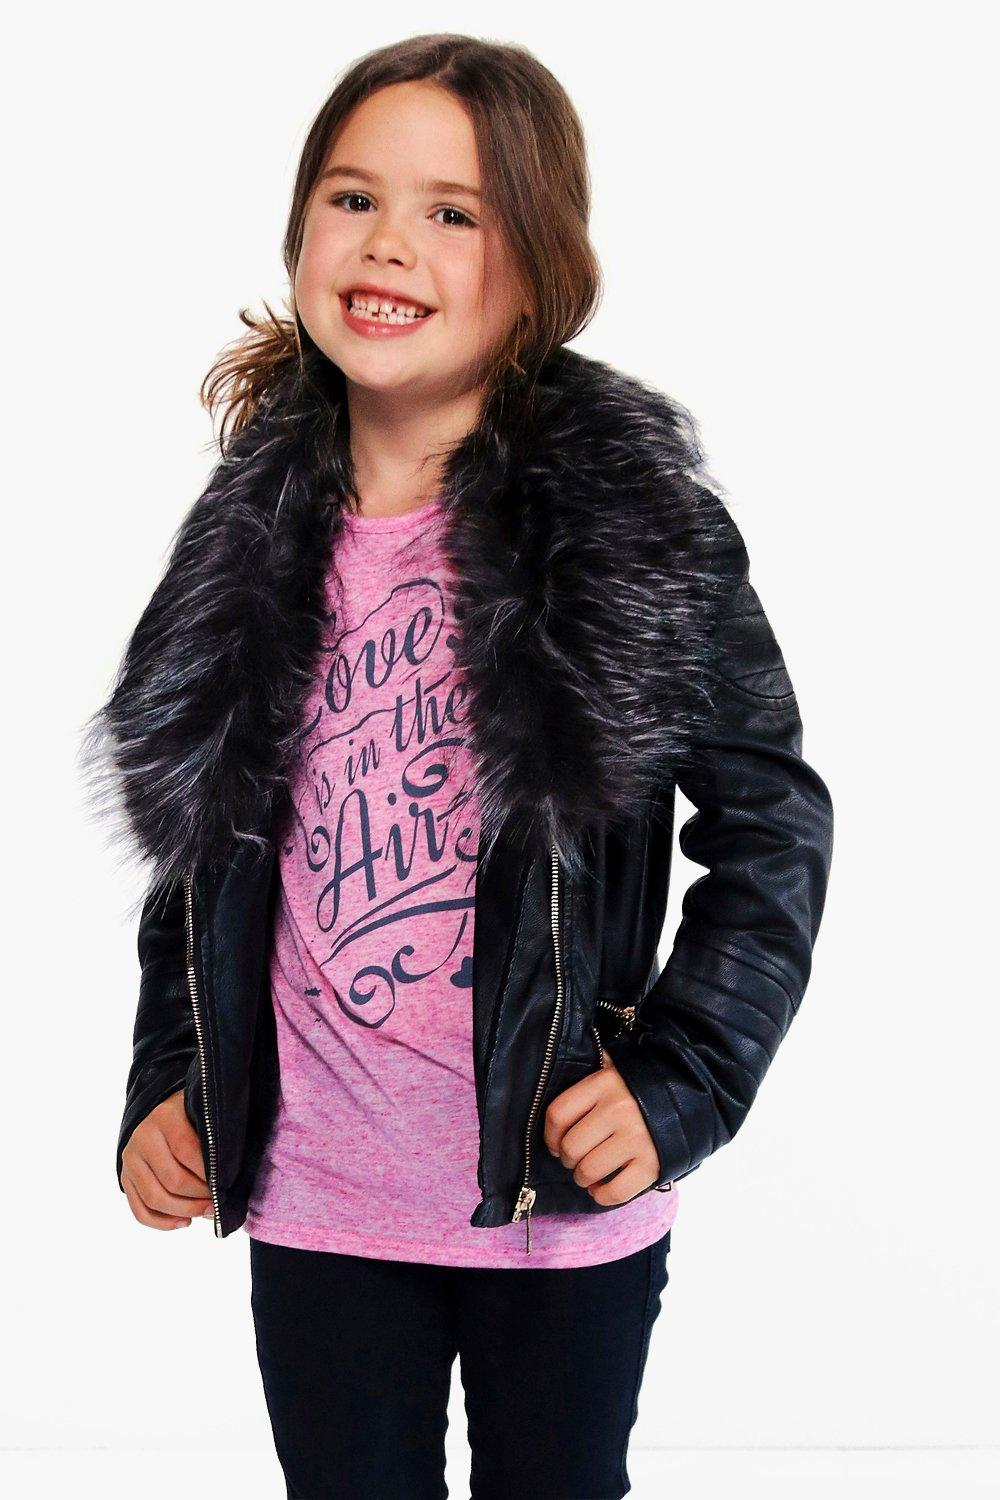 Girls Leather Jacket Black